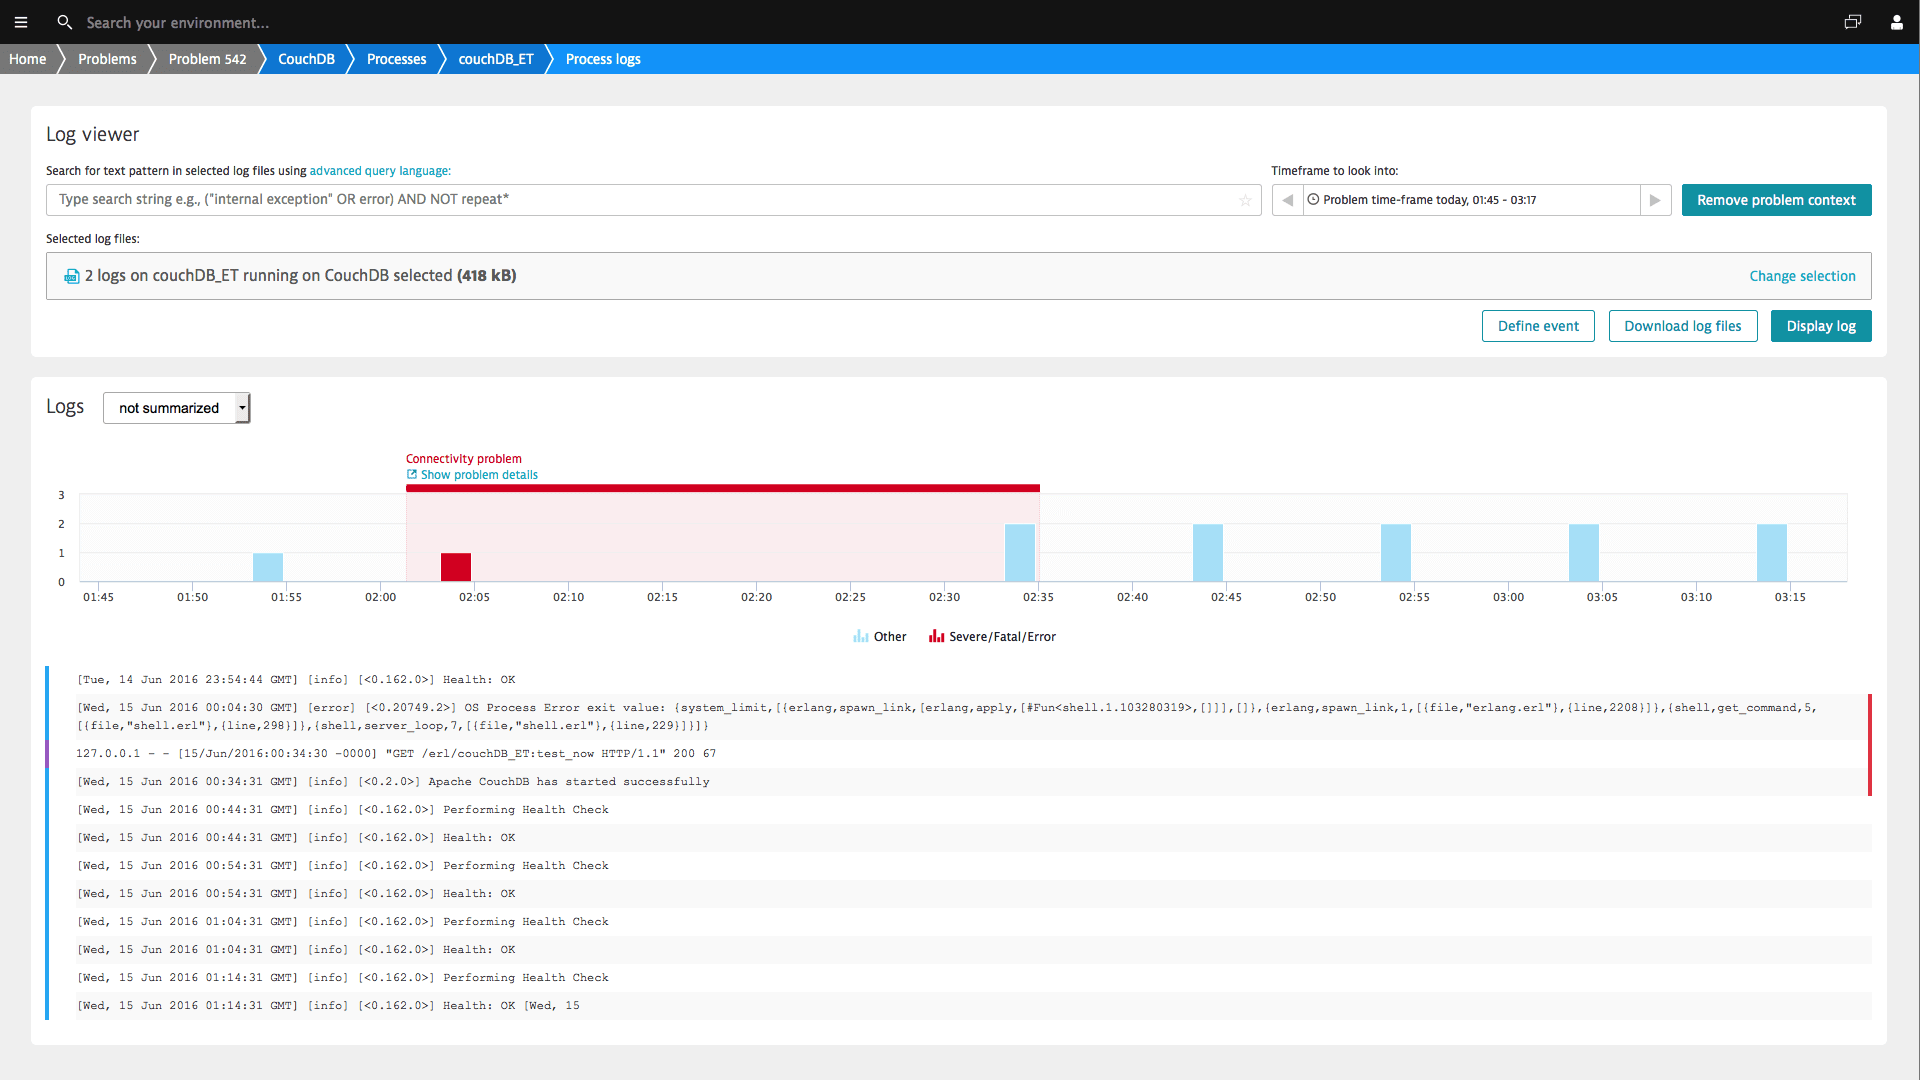 Dynatrace automatically identifies log entries related to performance issues.